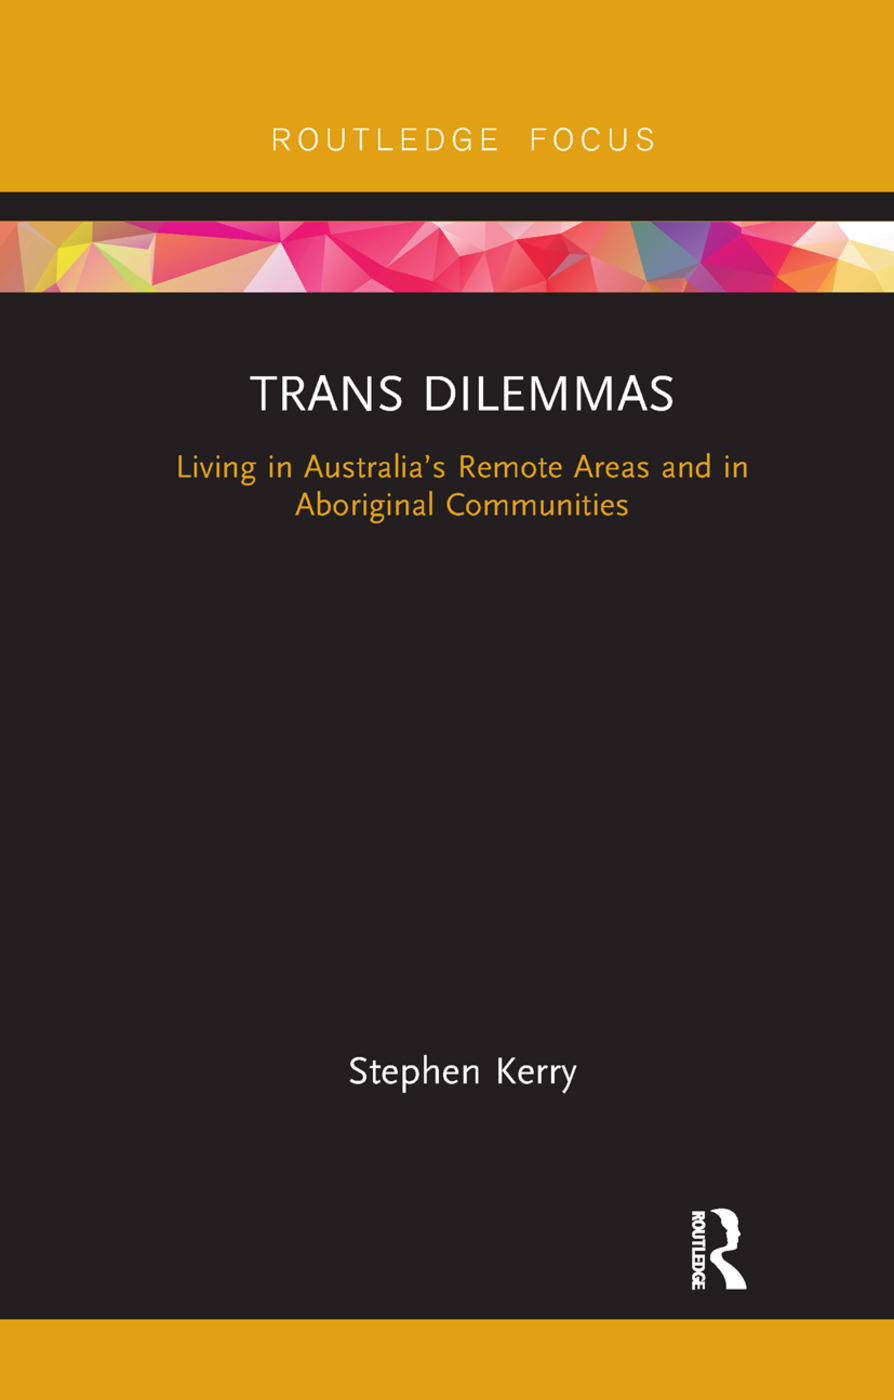 Trans Dilemmas: Living in Australia's Remote Areas and in Aboriginal Communities book cover